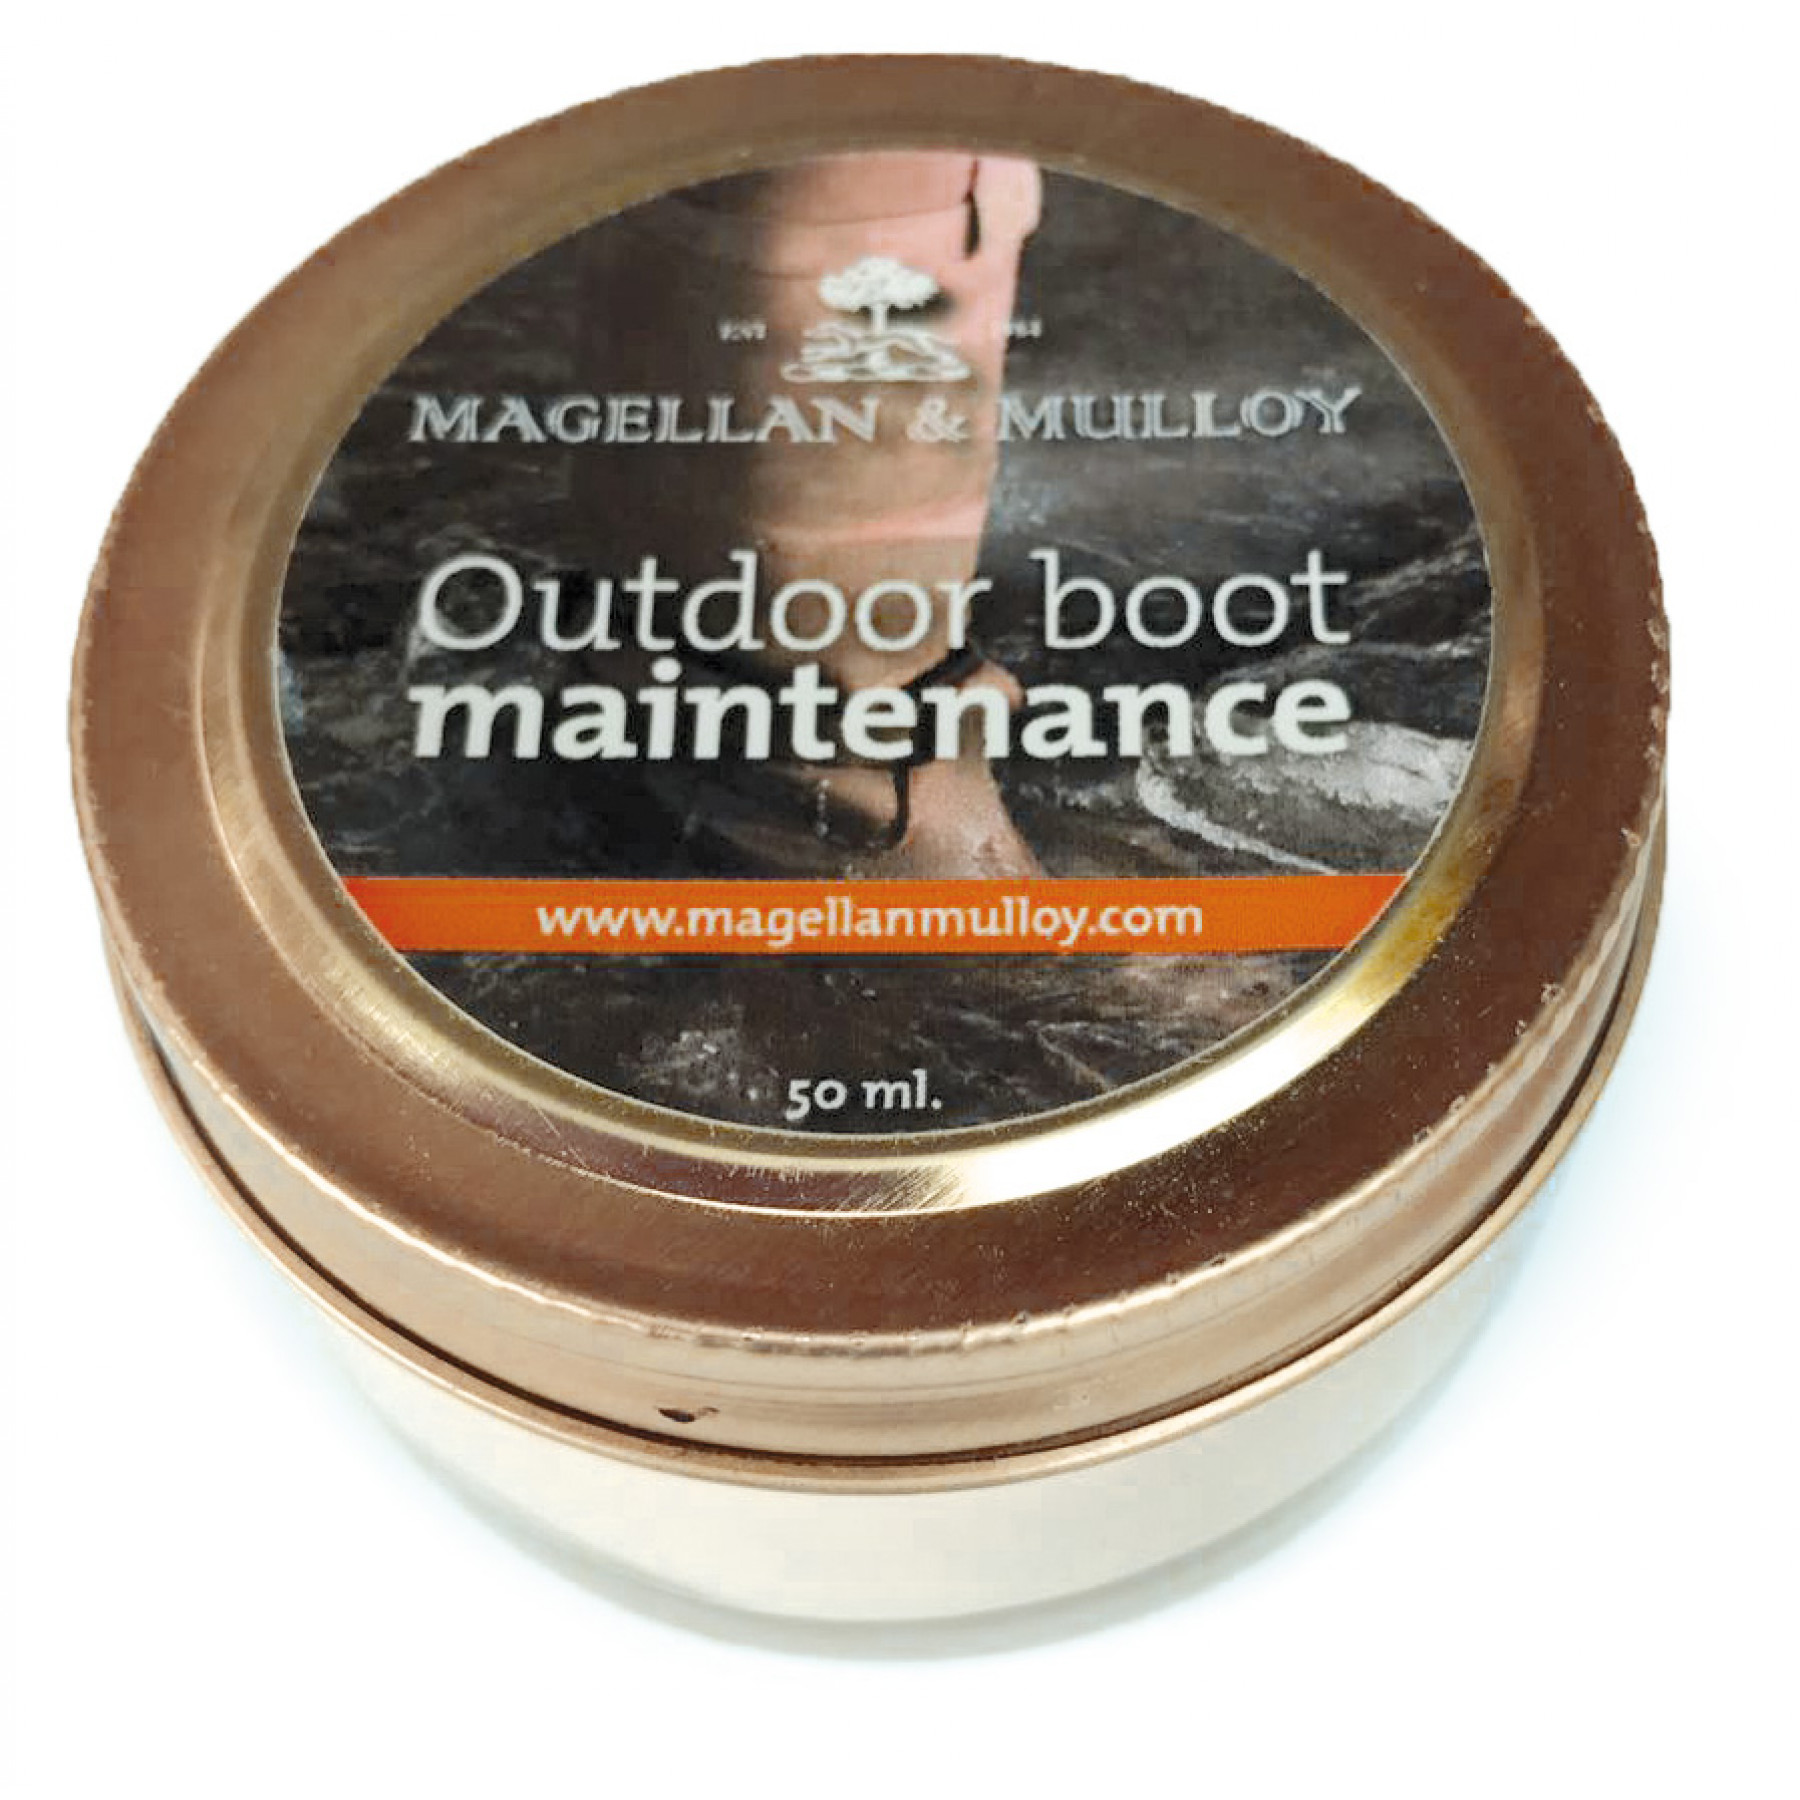 Outdoor Boot Maintenance, 50ml, 2 pieces